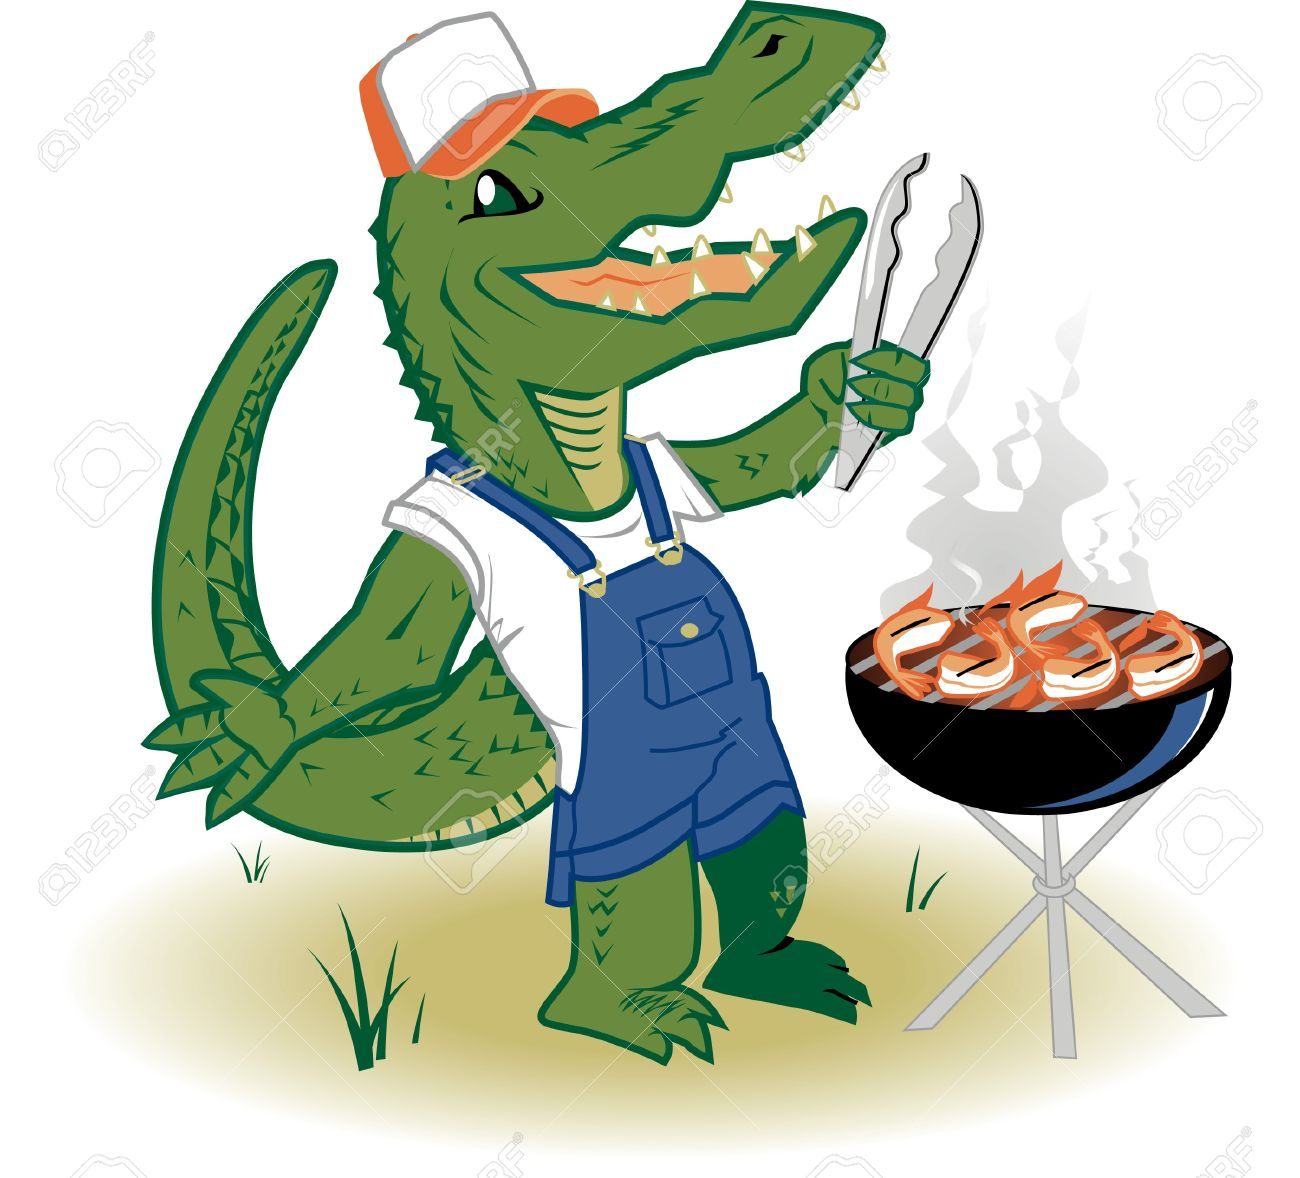 Image result for cartoon alligator grilling